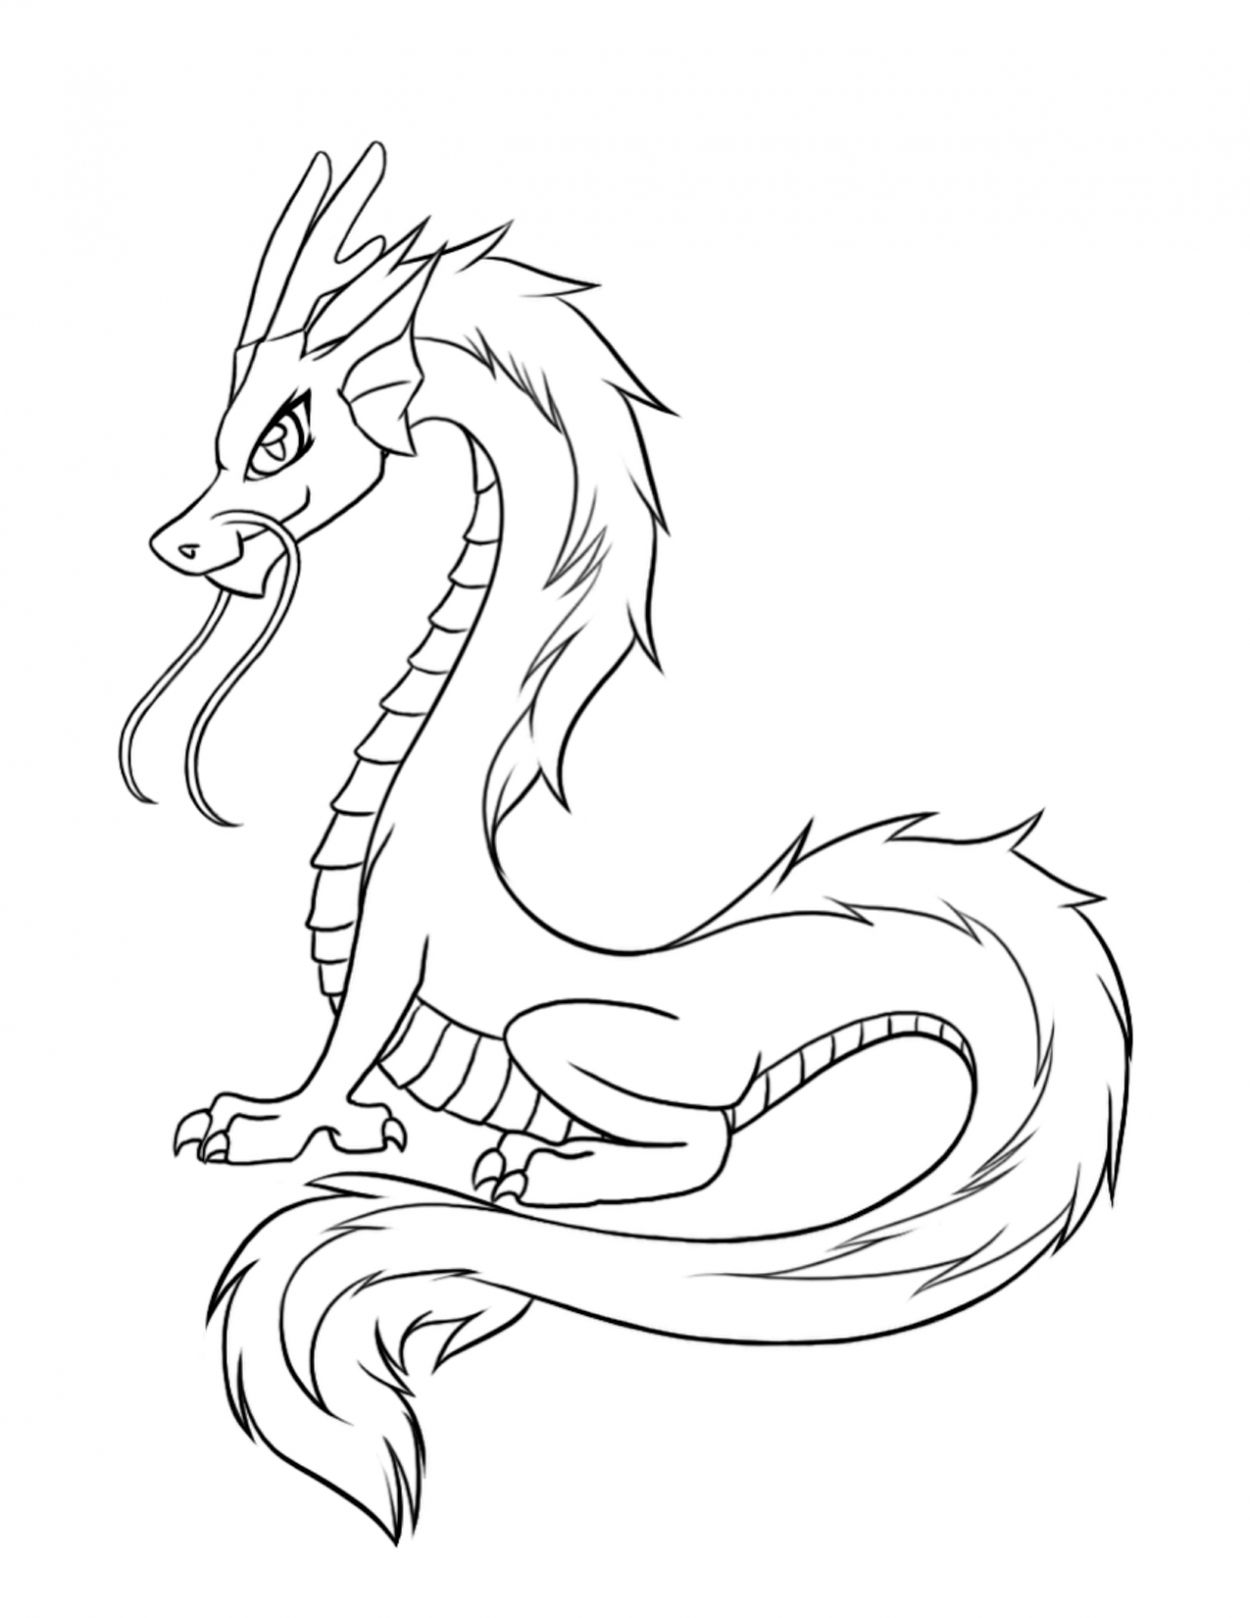 Simplified Chinese Dragon From Http Printncolor Coolphotos In